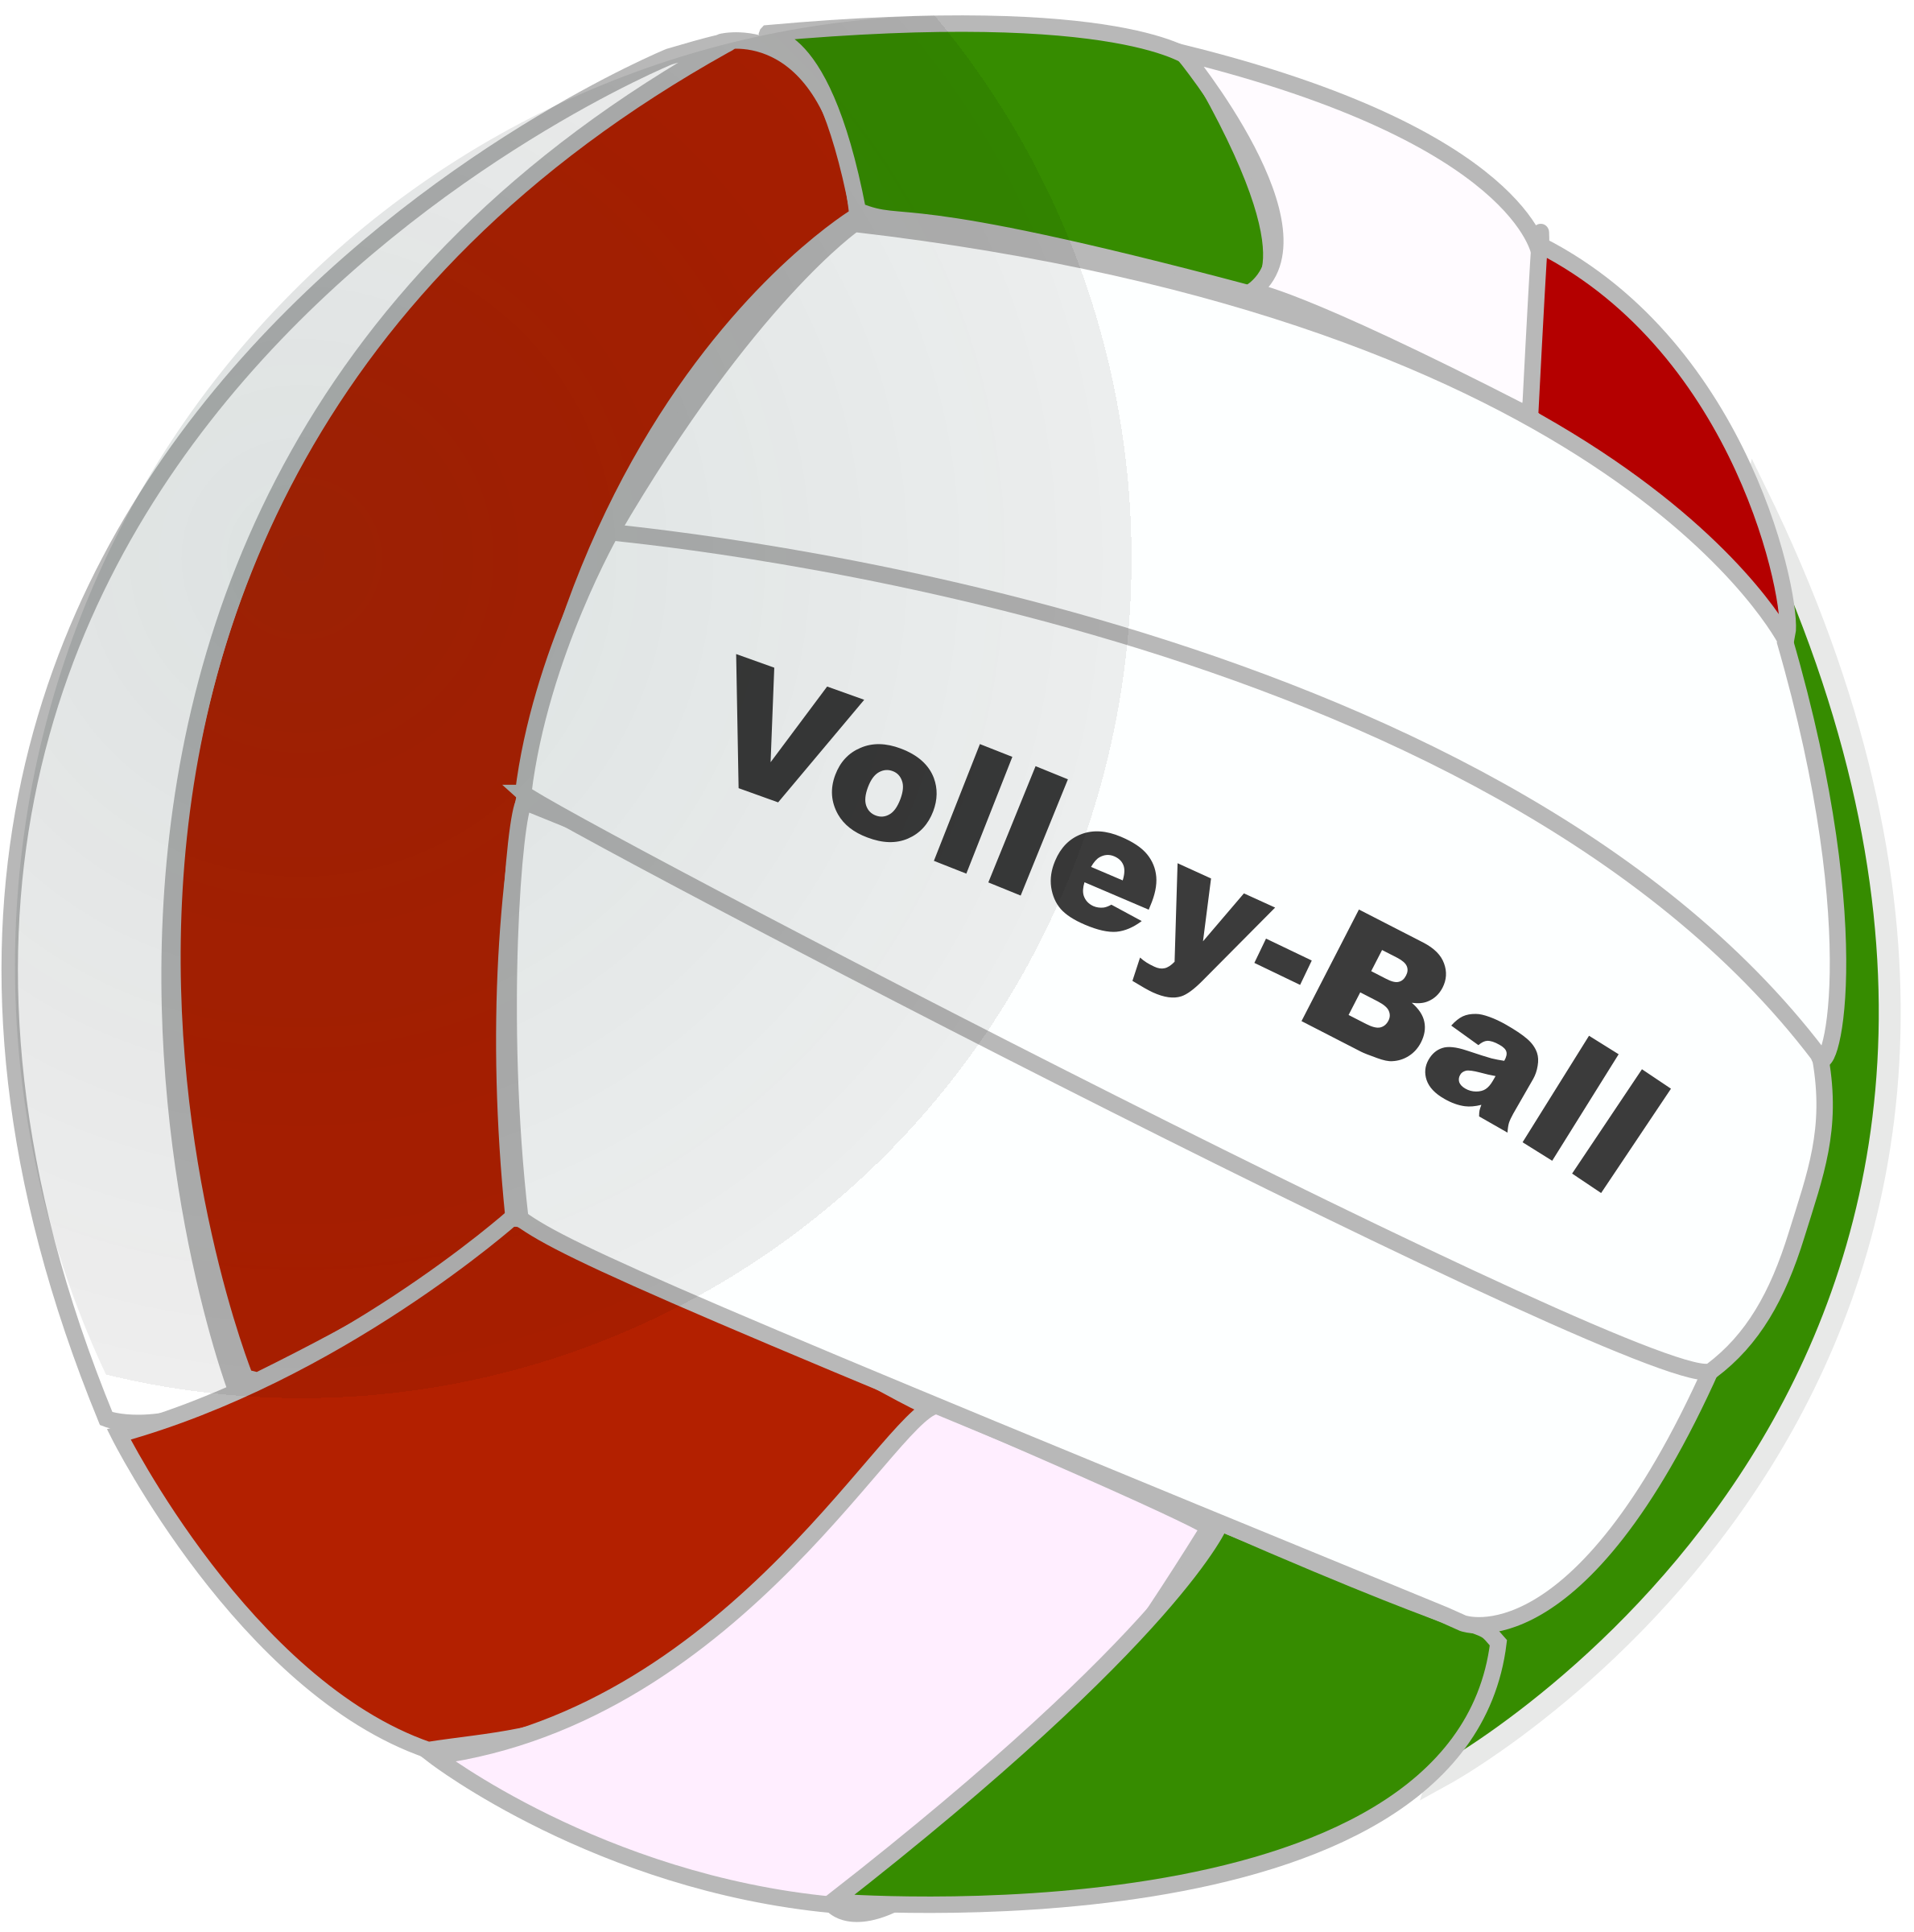 volleyball clipart vector - photo #26